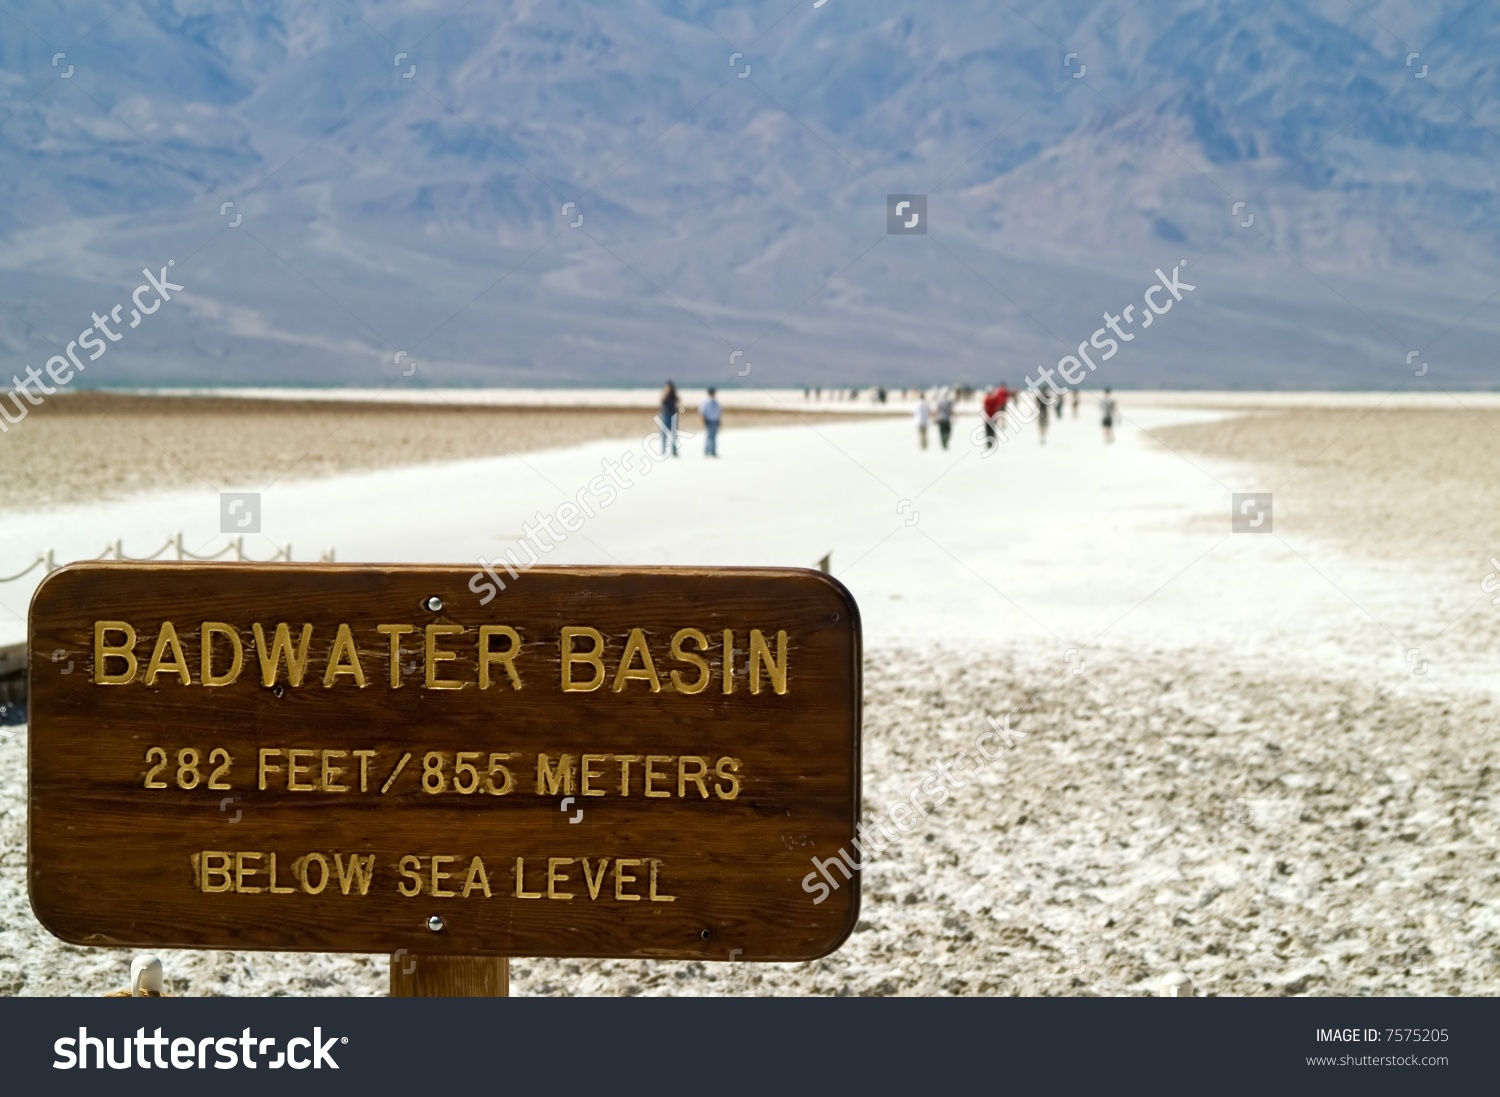 Badwater Basin Death Valley National Park Stock Photo 7575205.